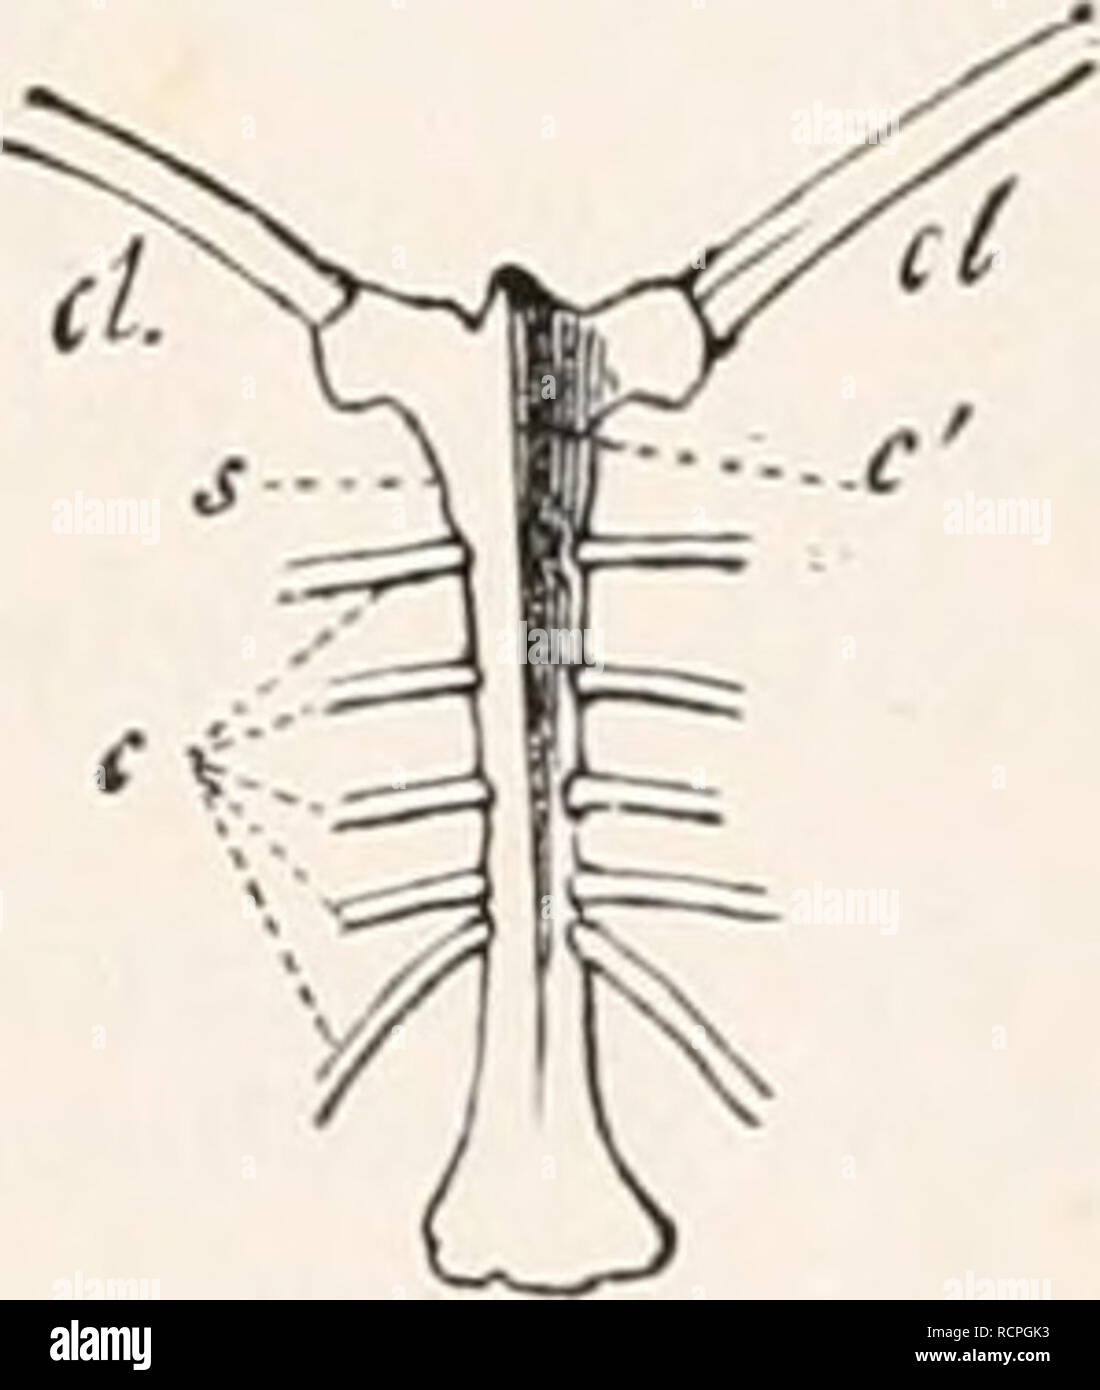 hight resolution of sternum of buteo vulgaris seen a little from one side crs crista sterni furcula c coracoid fig 235 sternum of numida nielea